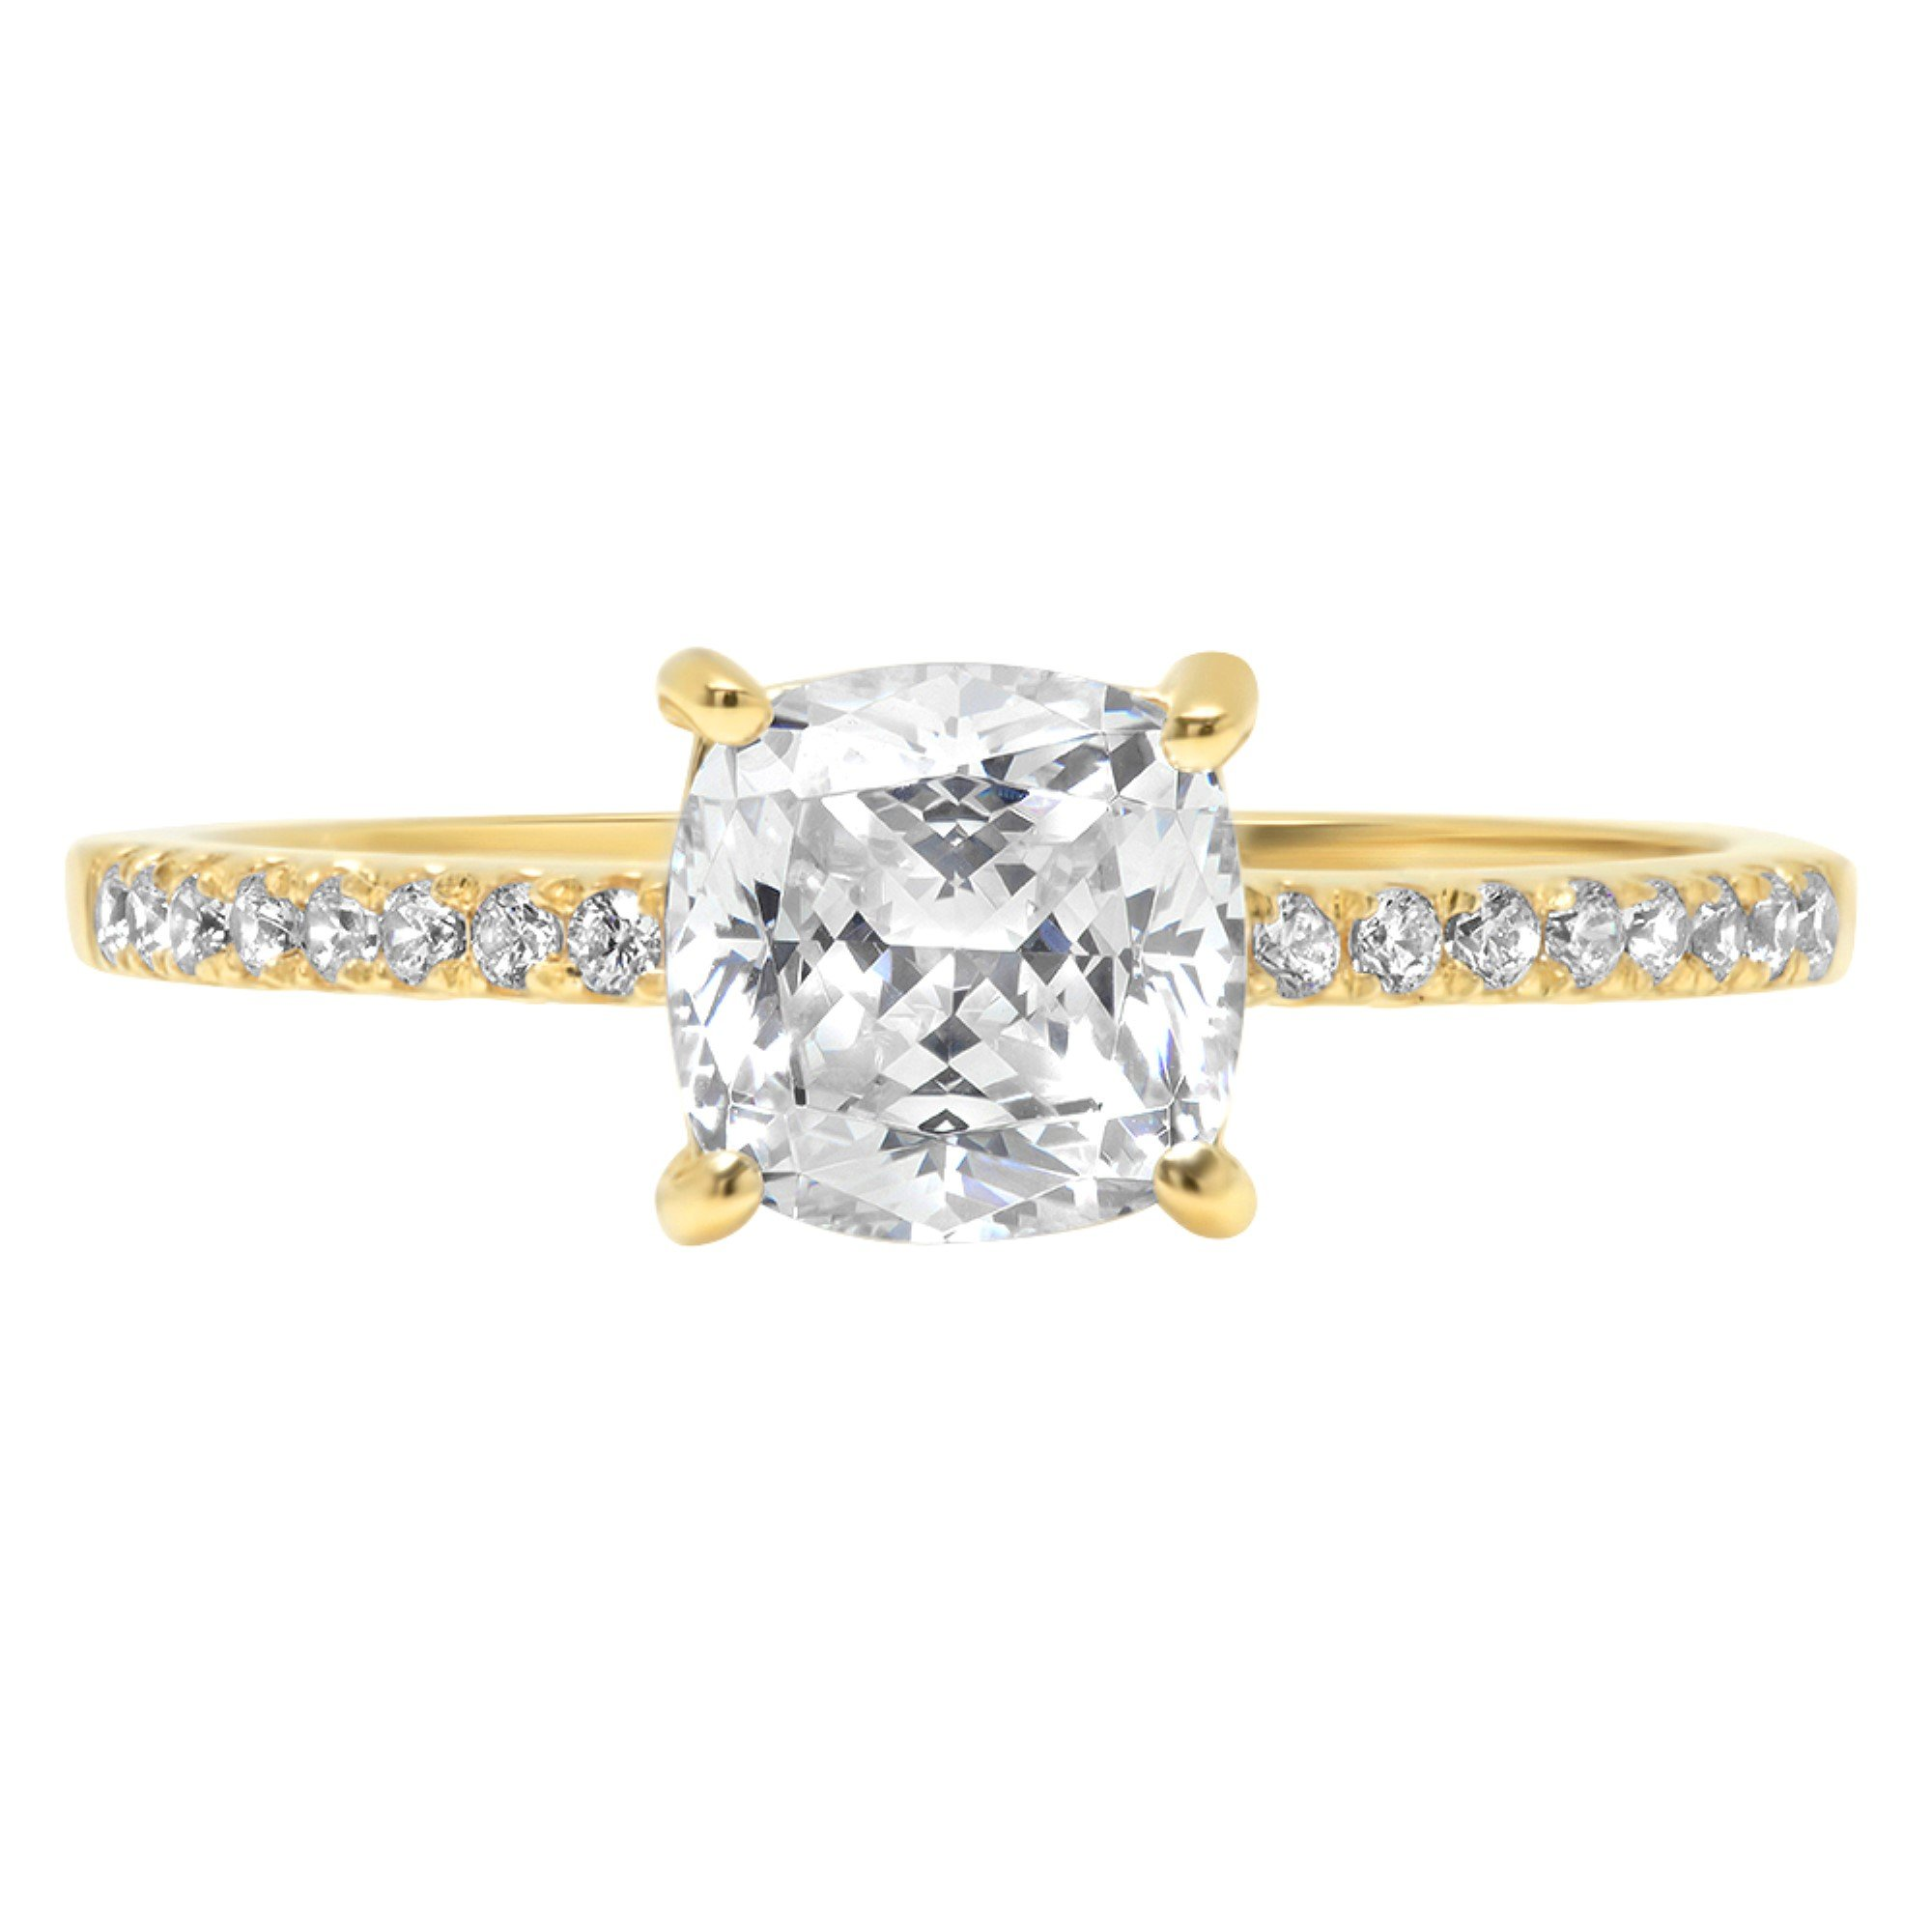 Cushion Round Cut Classic Solitaire Designer Wedding Bridal Statement Anniversary Engagement PromiseAccent Solitaire Ring 14k Yellow Gold, 1.86ct, 10.5 by Clara Pucci